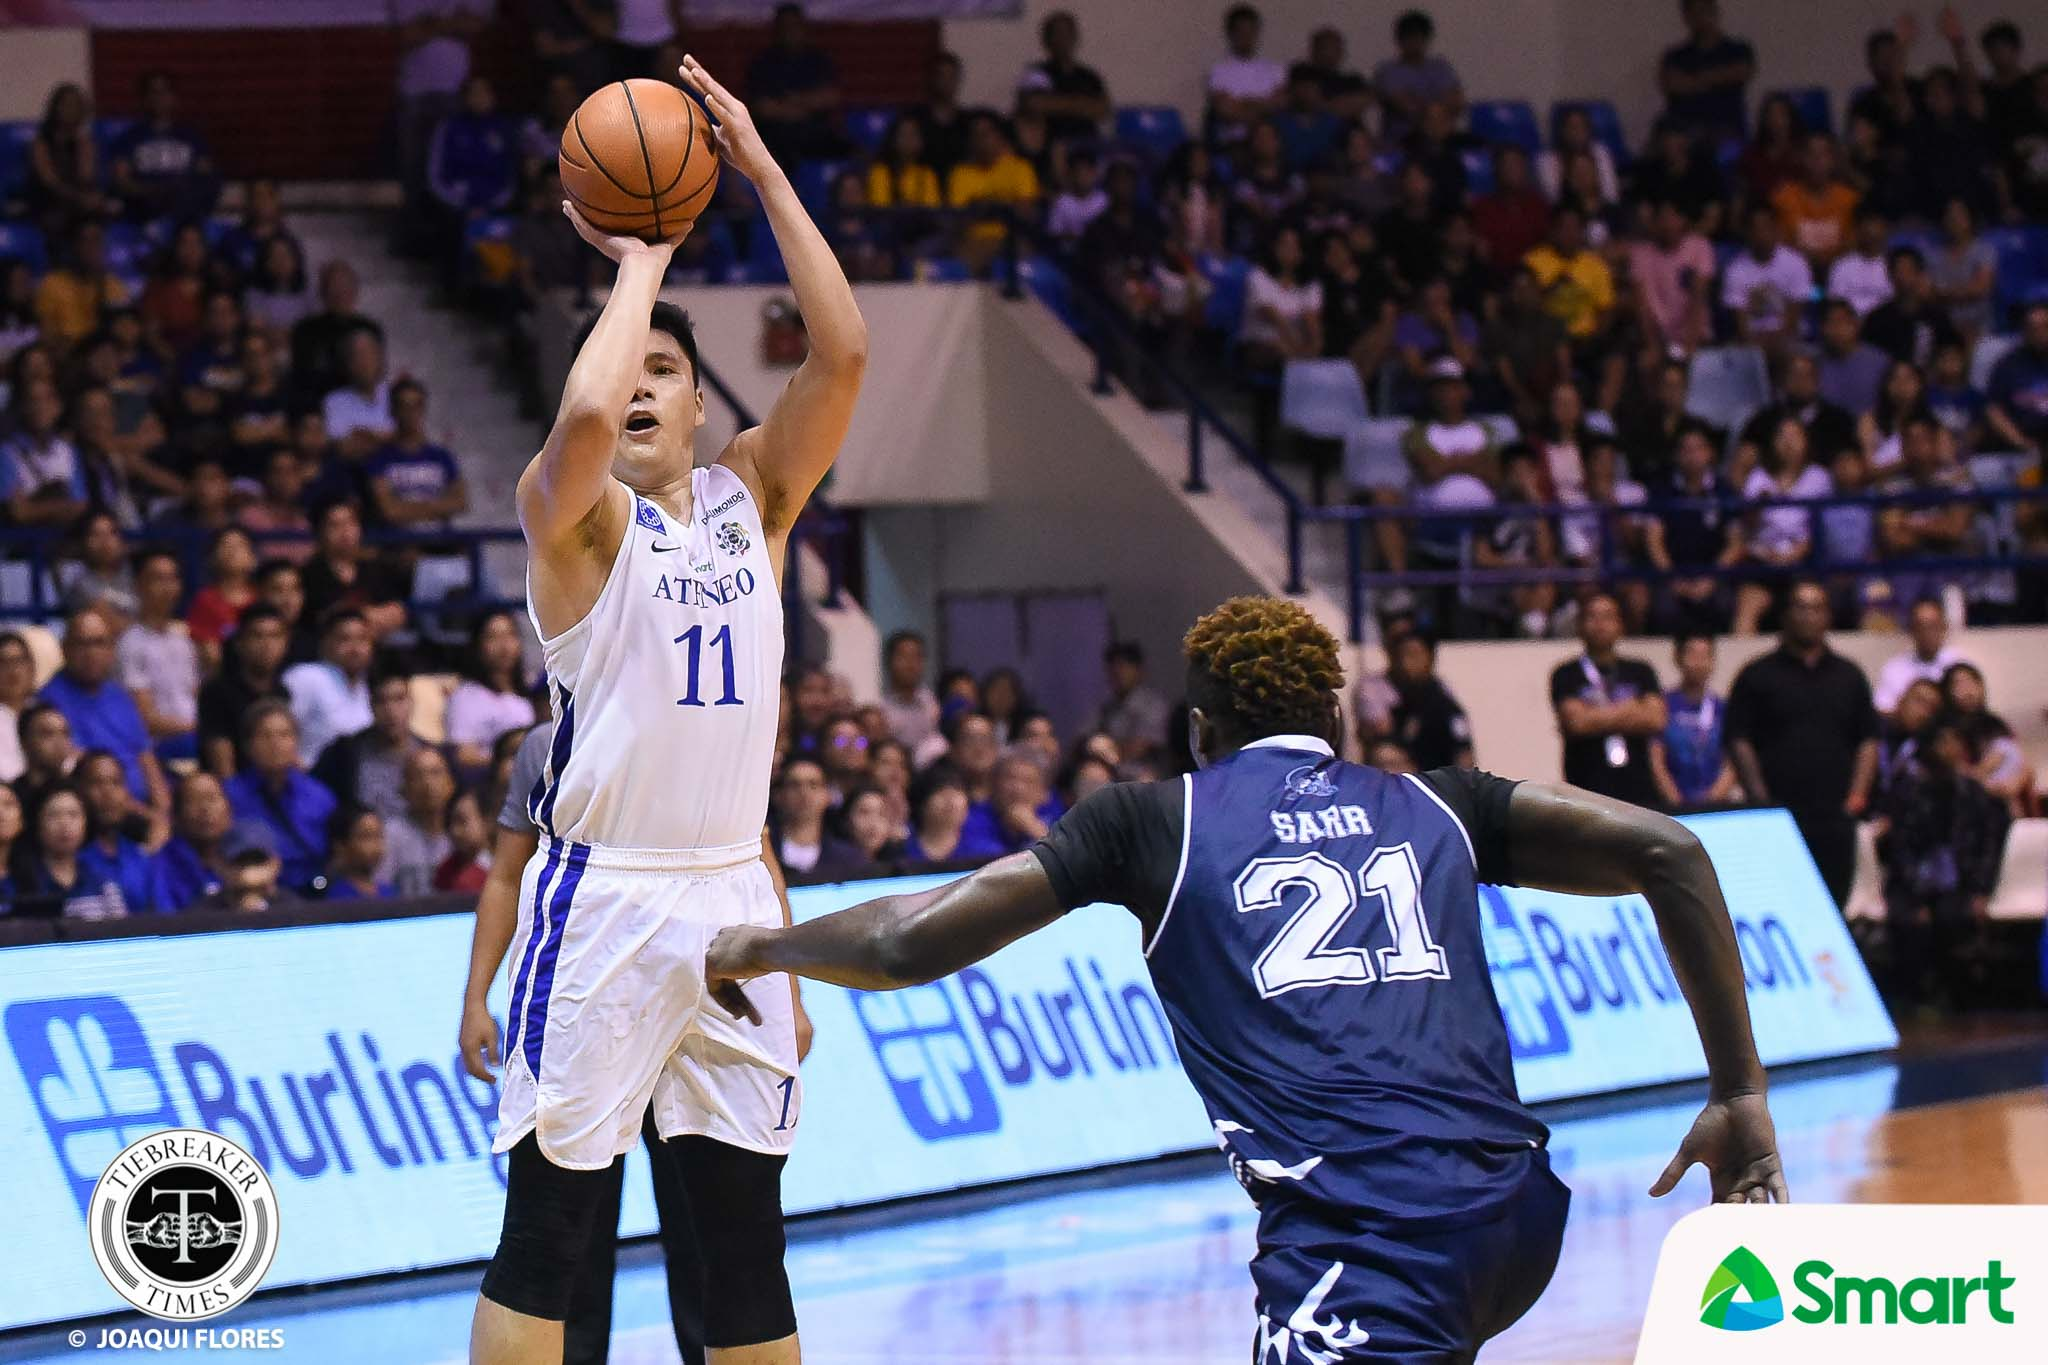 Tiebreaker Times Isaac Go wakes up from slumber as Ateneo gets back at Adamson ADMU AdU Basketball News UAAP  UAAP Season 81 Men's Basketball UAAP Season 81 Thirdy Ravena Tab Baldwin Simon Camacho Jerom Lastimosa Isaac Go Franz Pumaren Ateneo Men's Basketball Adamson Men's Basketball